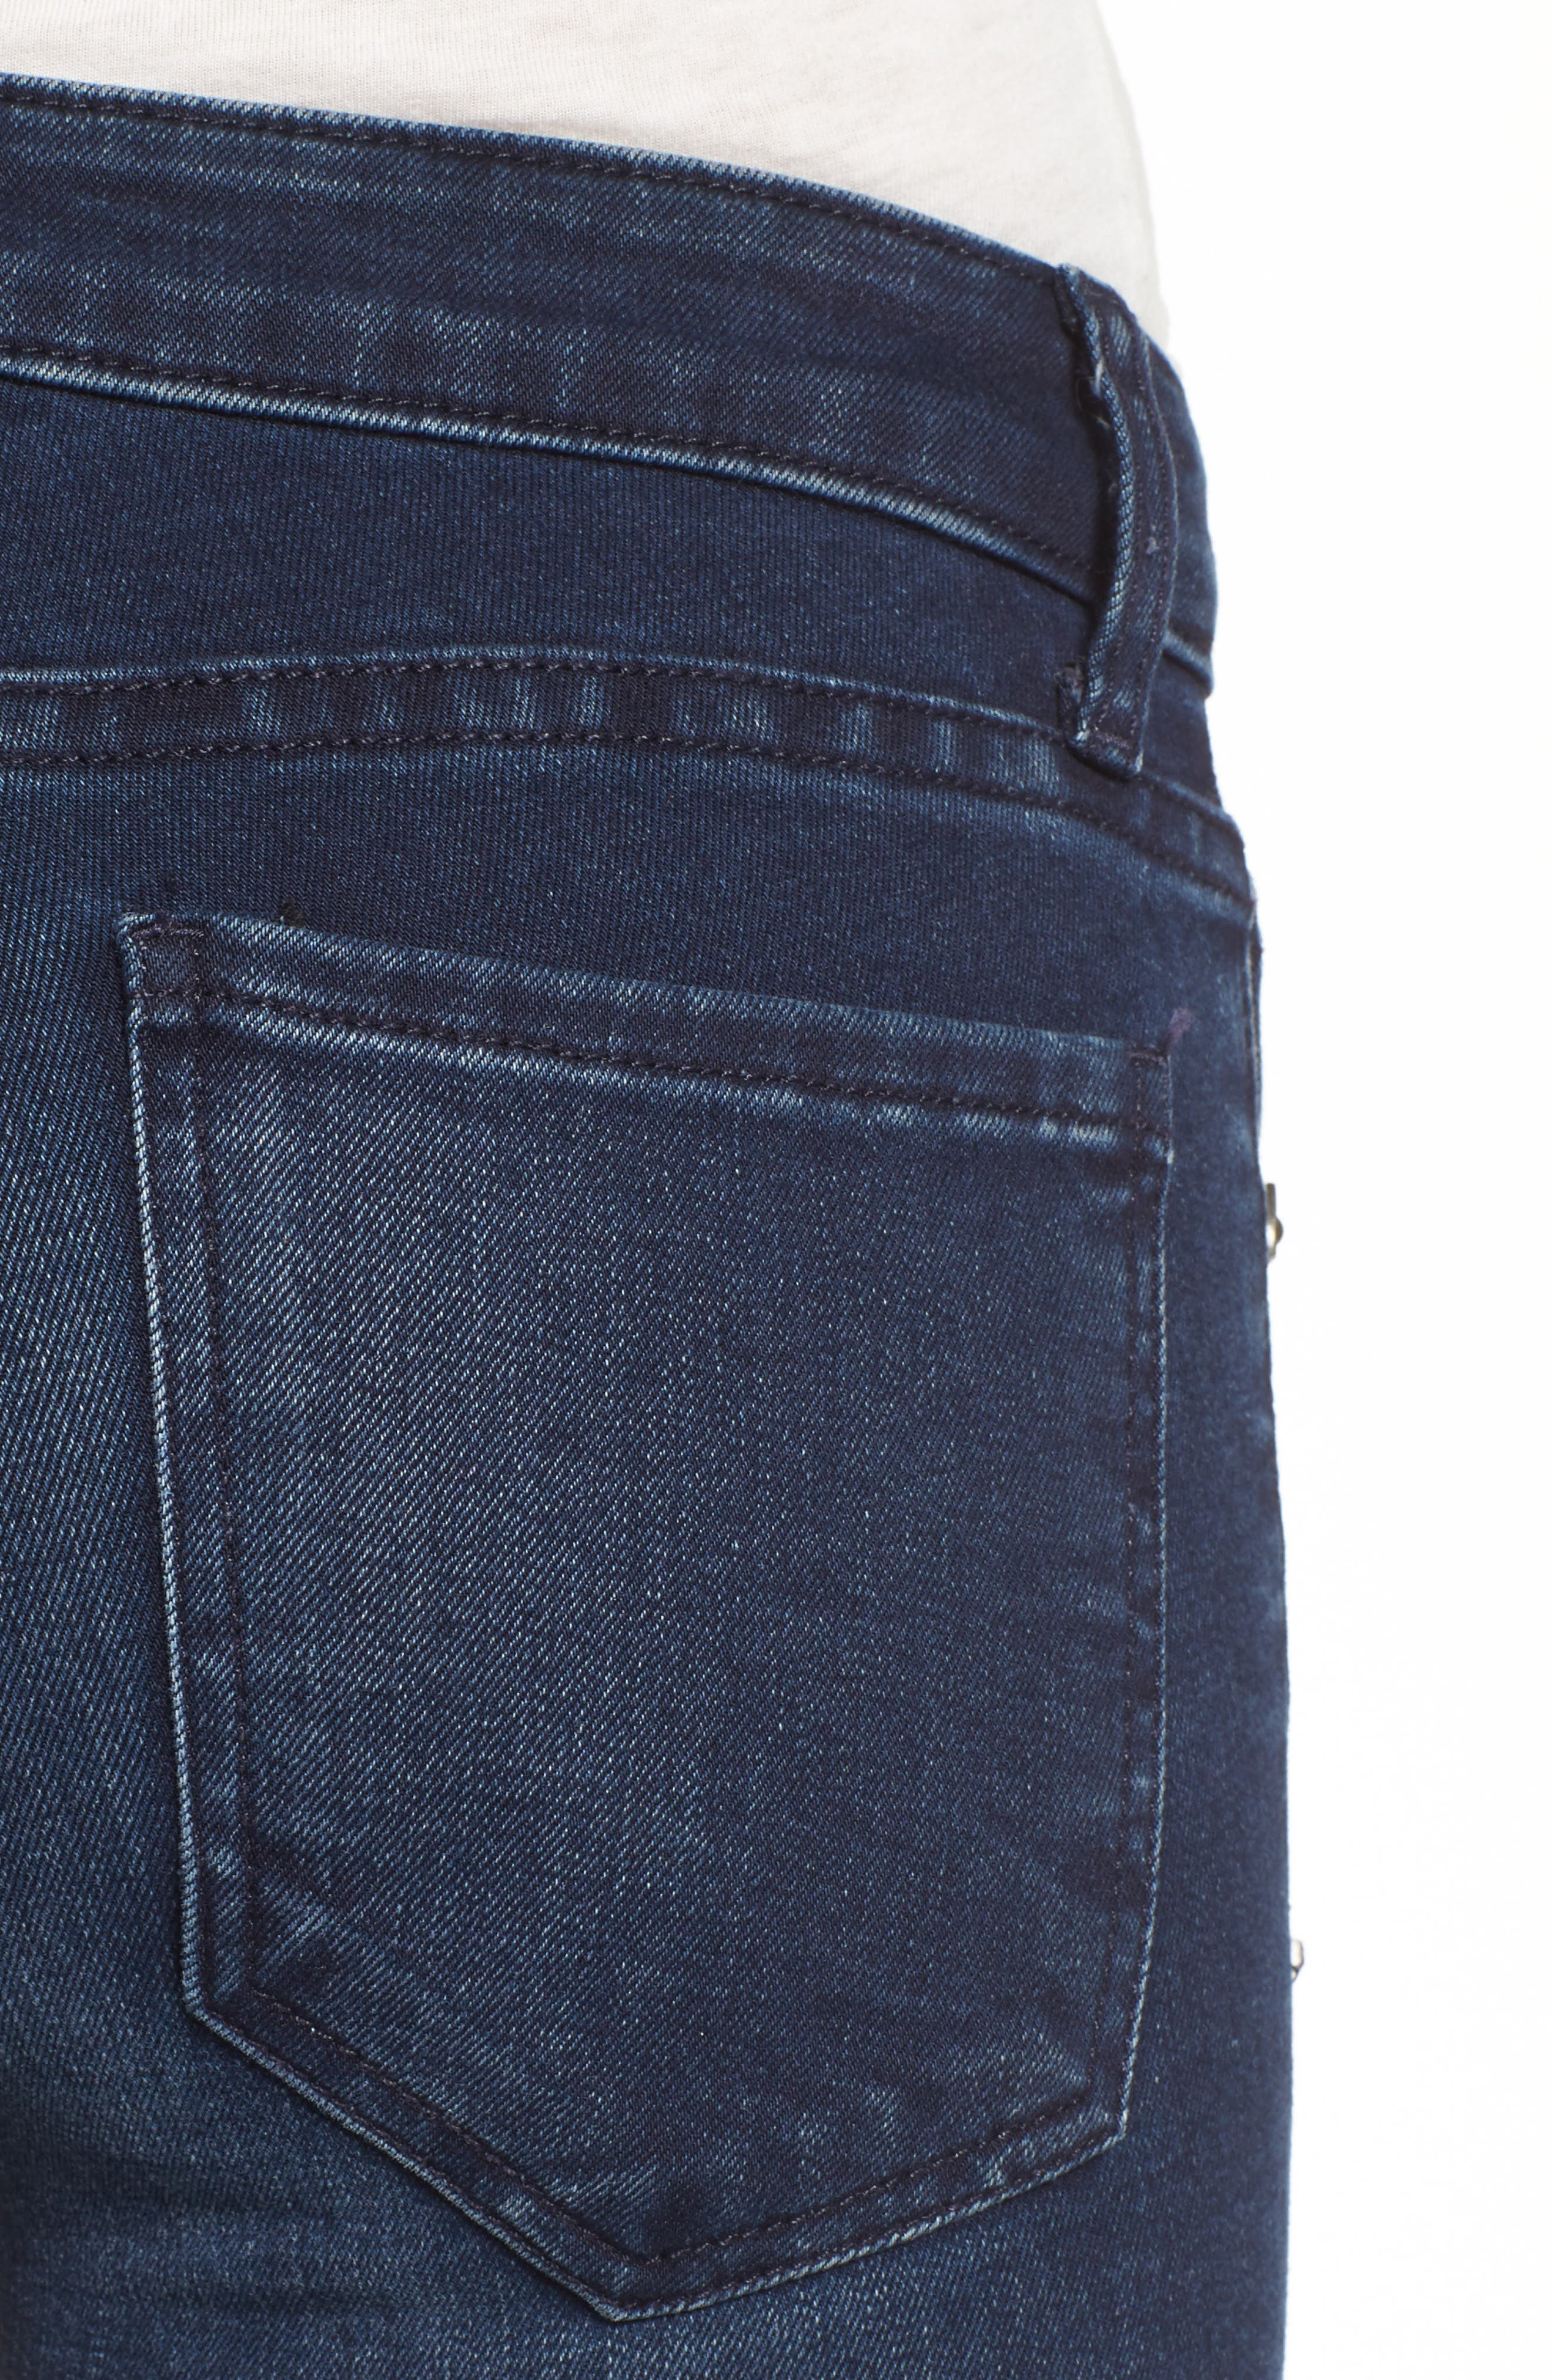 Alternate Image 5  - KUT from the Kloth Connie Skinny Ankle Jeans (Bloomed) (Regular & Petite)